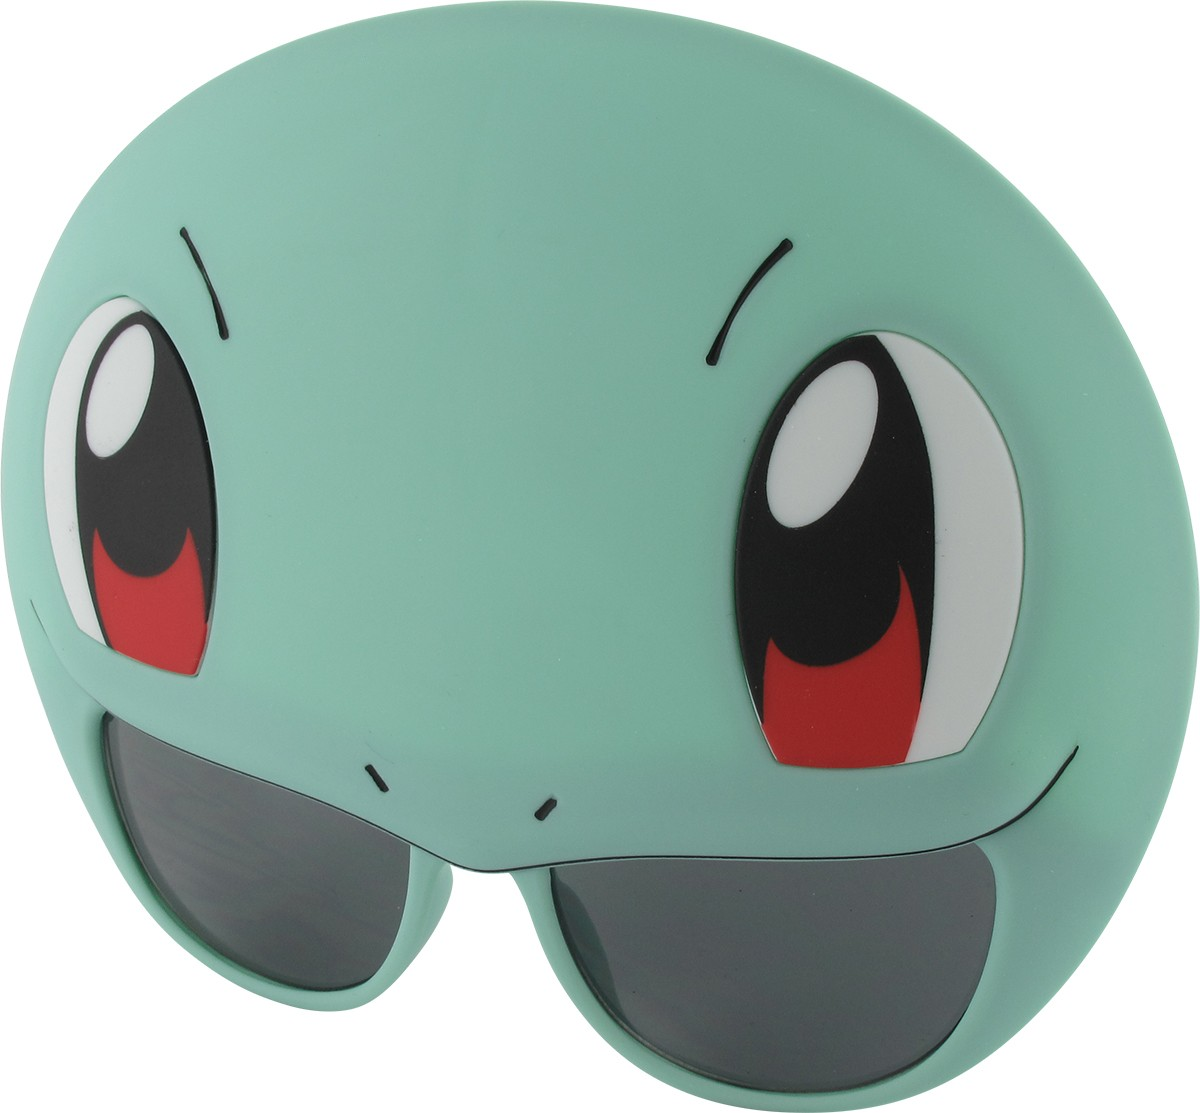 Glasses Pokemon Squirtle Cost